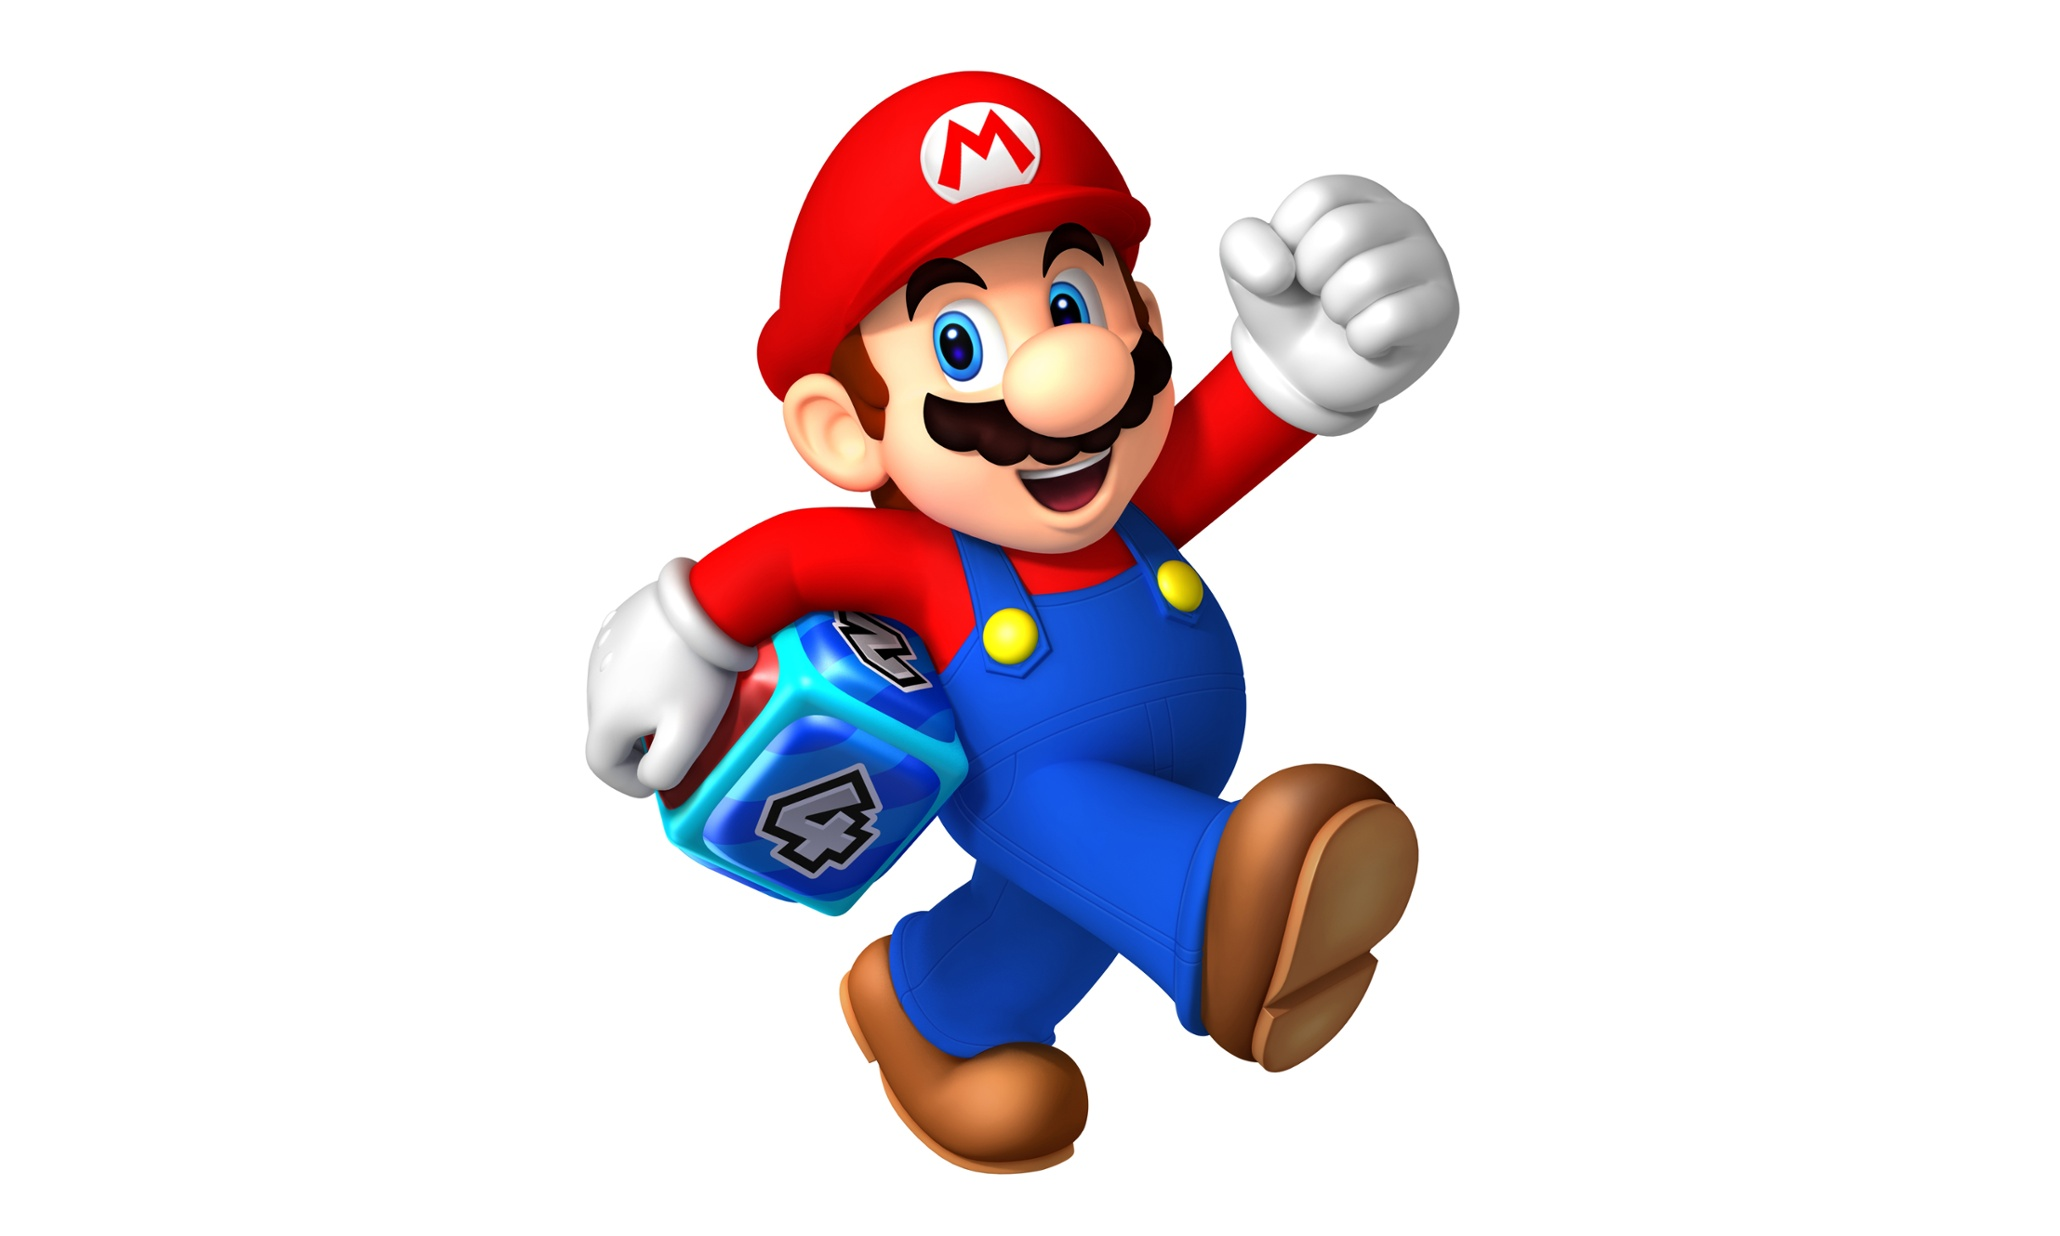 Mario on your smartphone: Nintendo strikes mobile games deal with DeNA